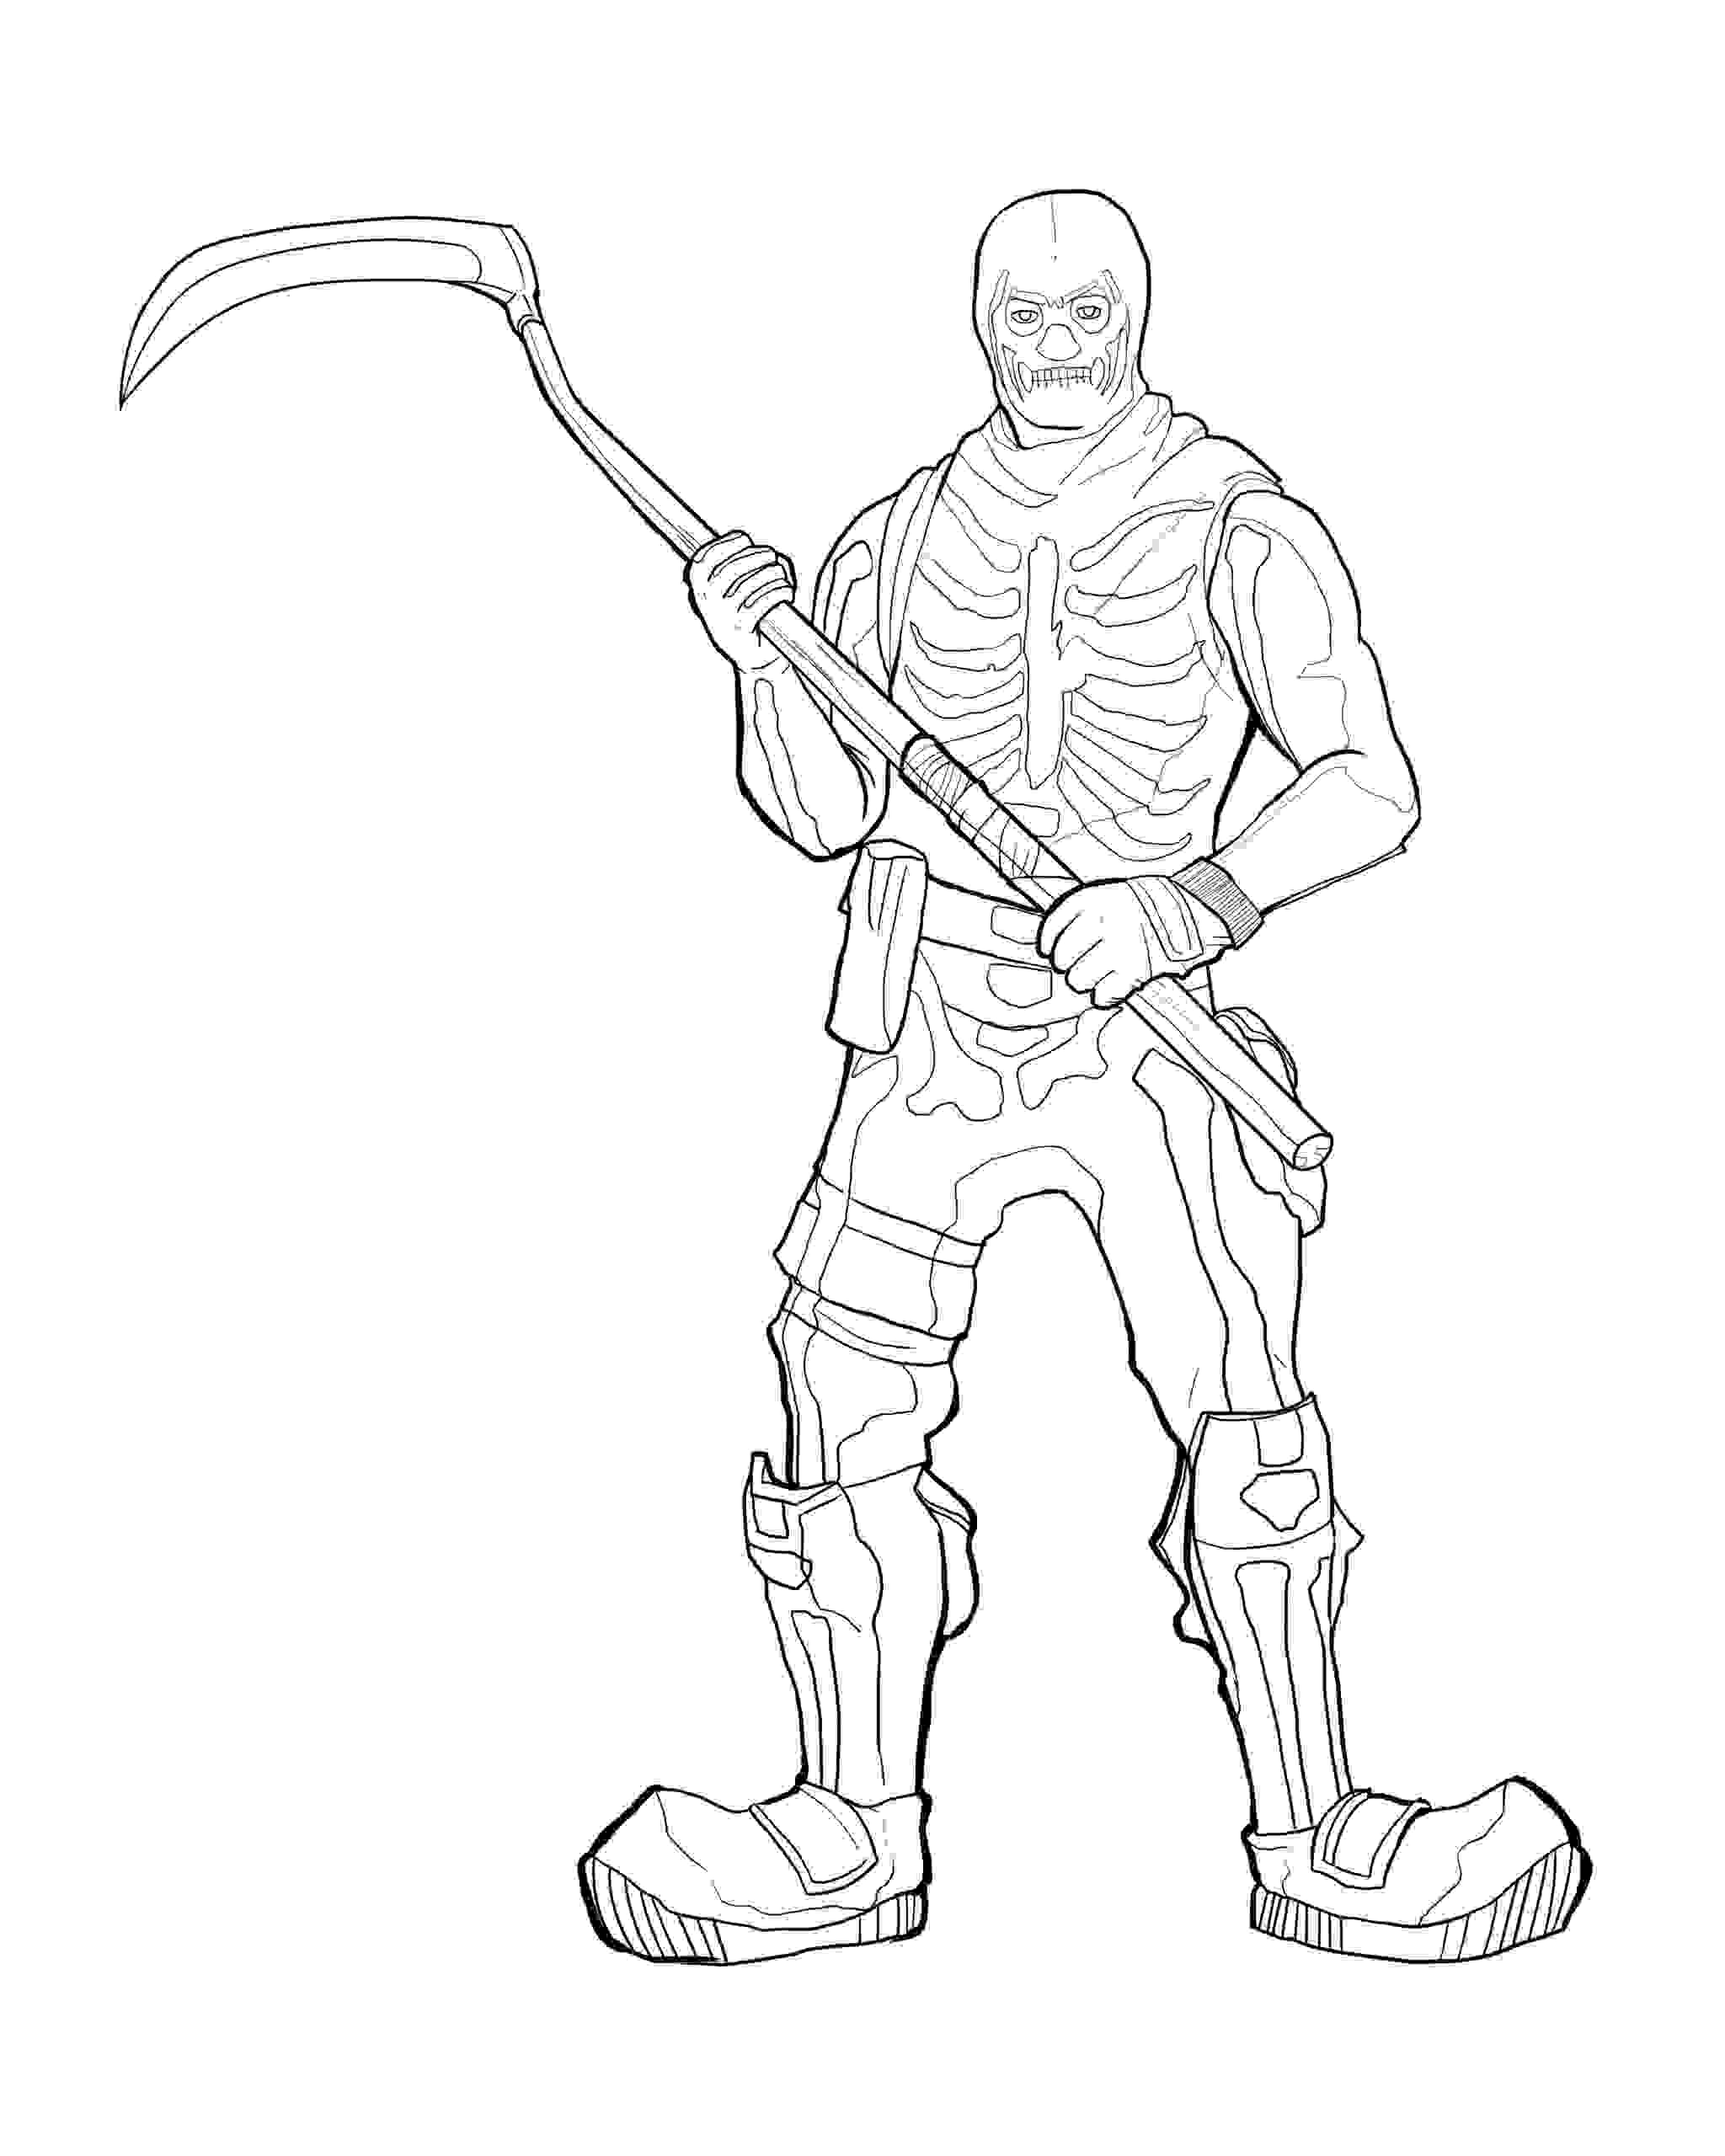 Skull Trooper has a Rare Harvesting Tool in Fortnite Coloring Page